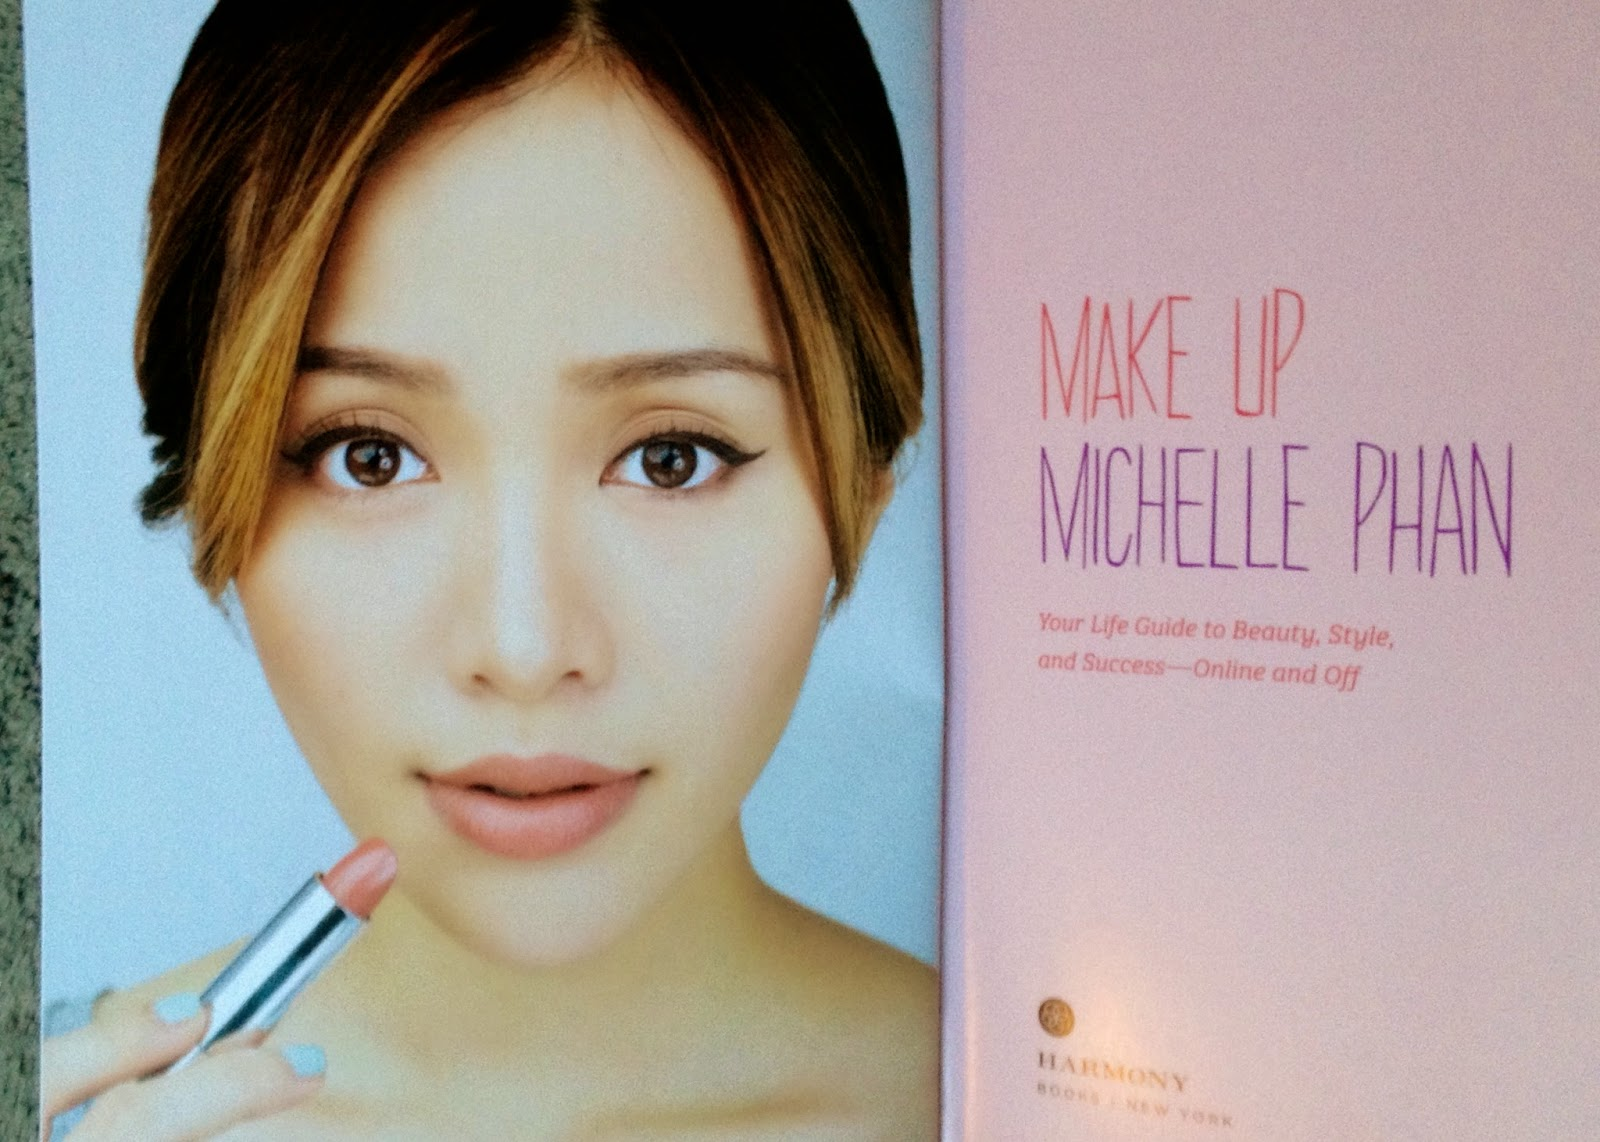 Make Up: Your Life Guide to Beauty, Style and Success – Online and Off by Michelle Phan youtube beauty guru